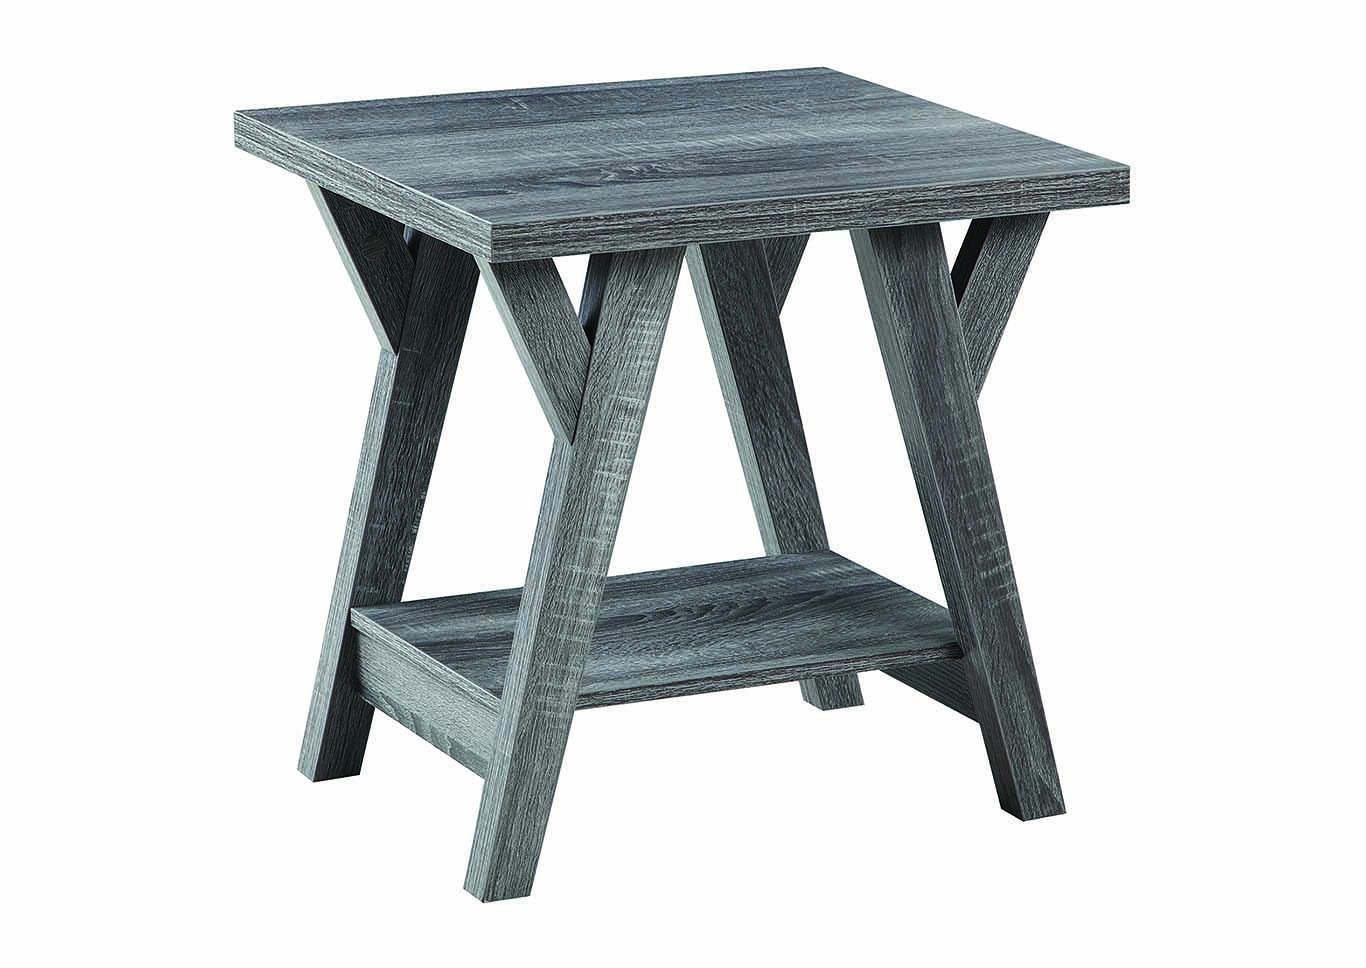 country house furniture distressed grey end table tables coaster marble top bedside kmart for you jos and glass cushions brown leather lounge thomasville hotel home sense ottawa